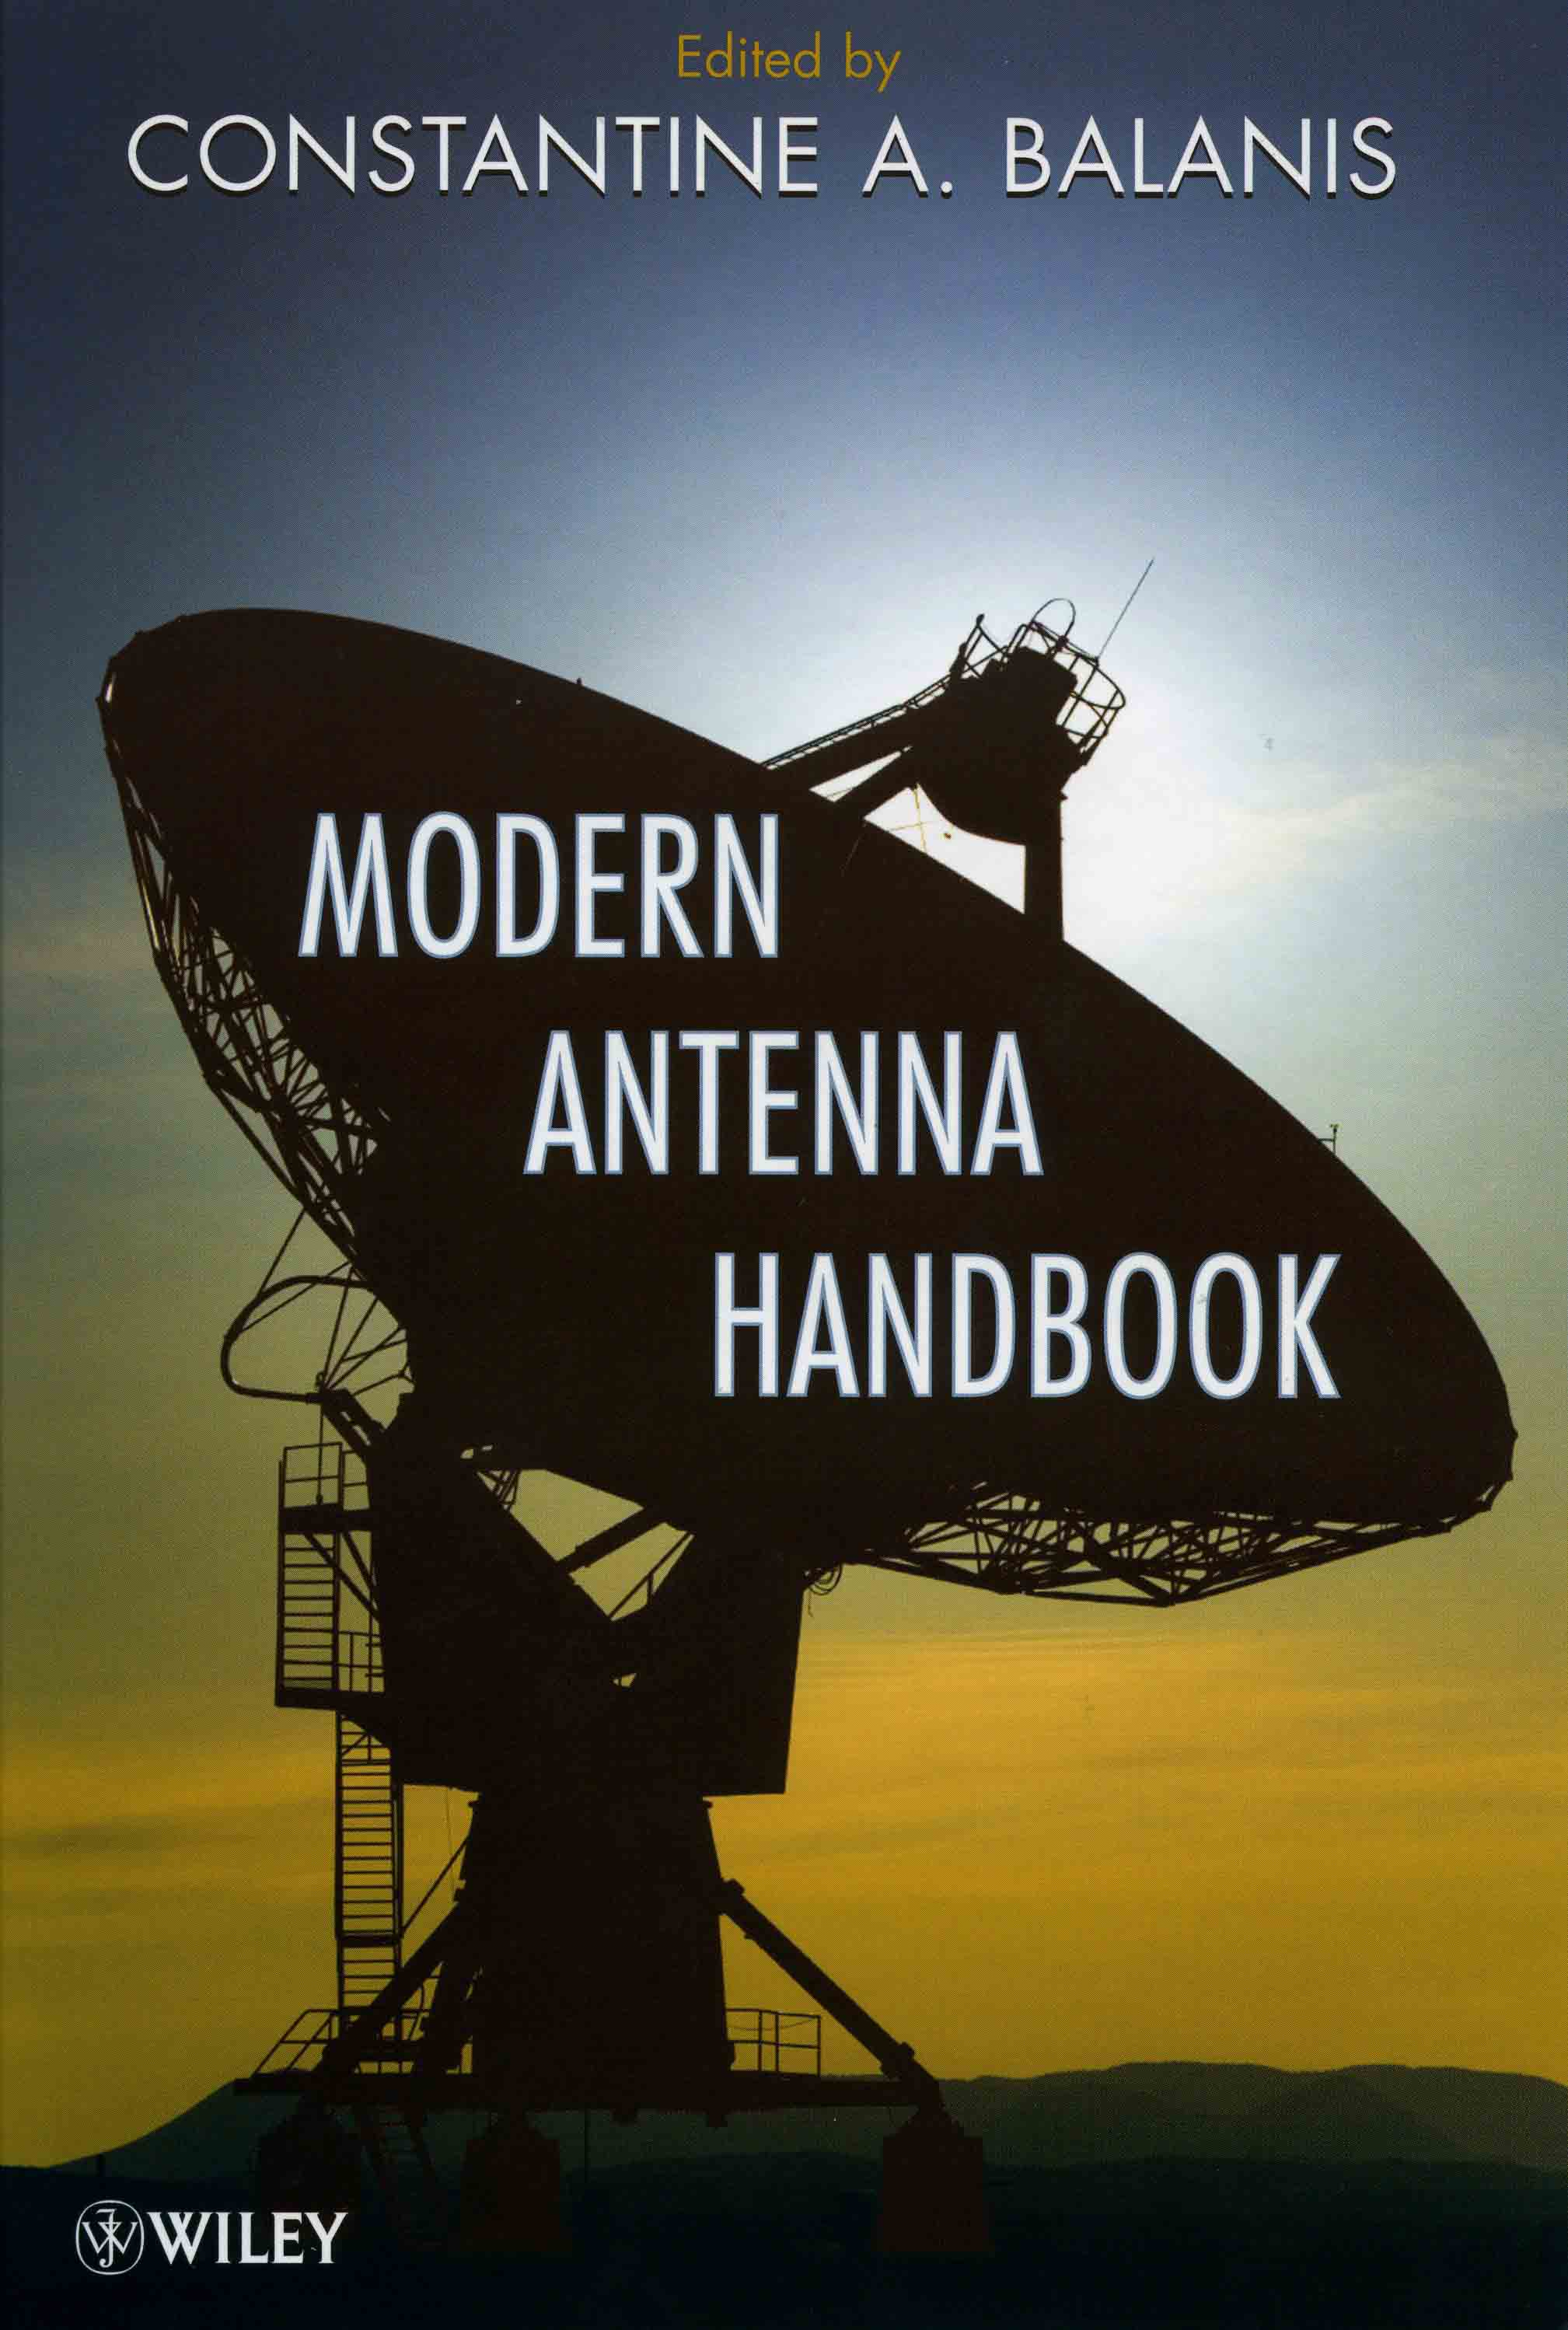 Balanis home publications panayiotis i ioannides modern antenna handbook john wiley sons 2008 editor fandeluxe Choice Image